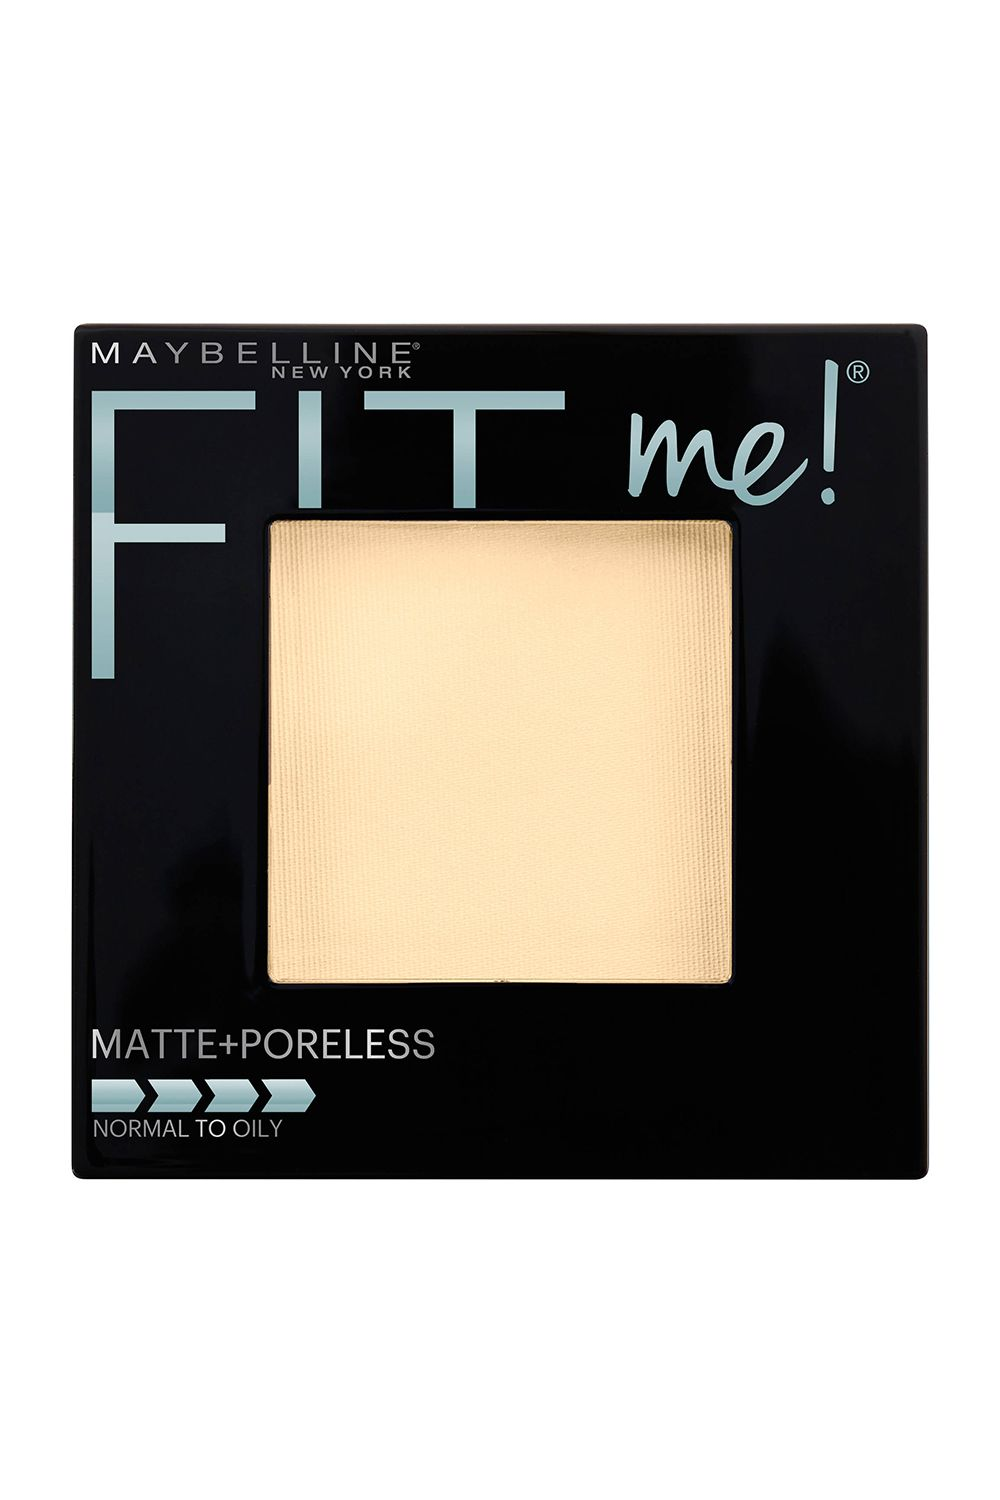 """<p>Swirl this velvet-y powder foundation over your T-zone to zap shiny skin and even out blotchiness, or layer it over your entire face for a diffused, filtered finish.</p><p><i data-redactor-tag=""""i"""">Maybelline New York Fit Me Matte Plus Poreless Powder, $5.64</i></p><p><strong data-redactor-tag=""""strong"""">BUY IT: <a href=""""https://www.amazon.com/Maybelline-New-York-Poreless-Translucent/dp/B01DPA78WY?th=1"""">amazon.com</a>.</strong></p>"""